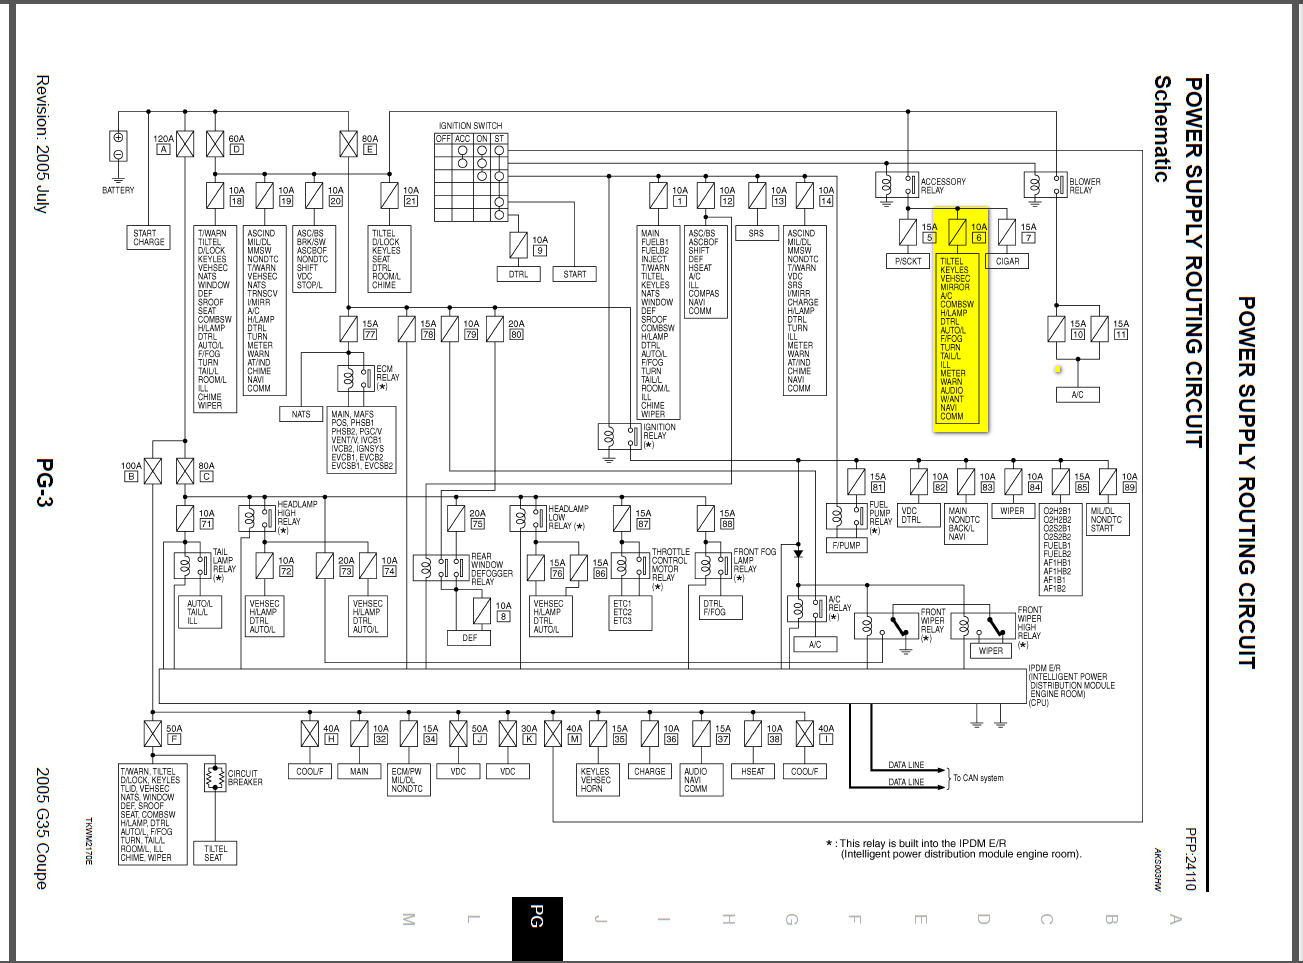 2006 Nissan Titan Fuse Box Diagram Wiring Library Sentra Harness 2000 Xterra Speaker Efcaviation Com 2009